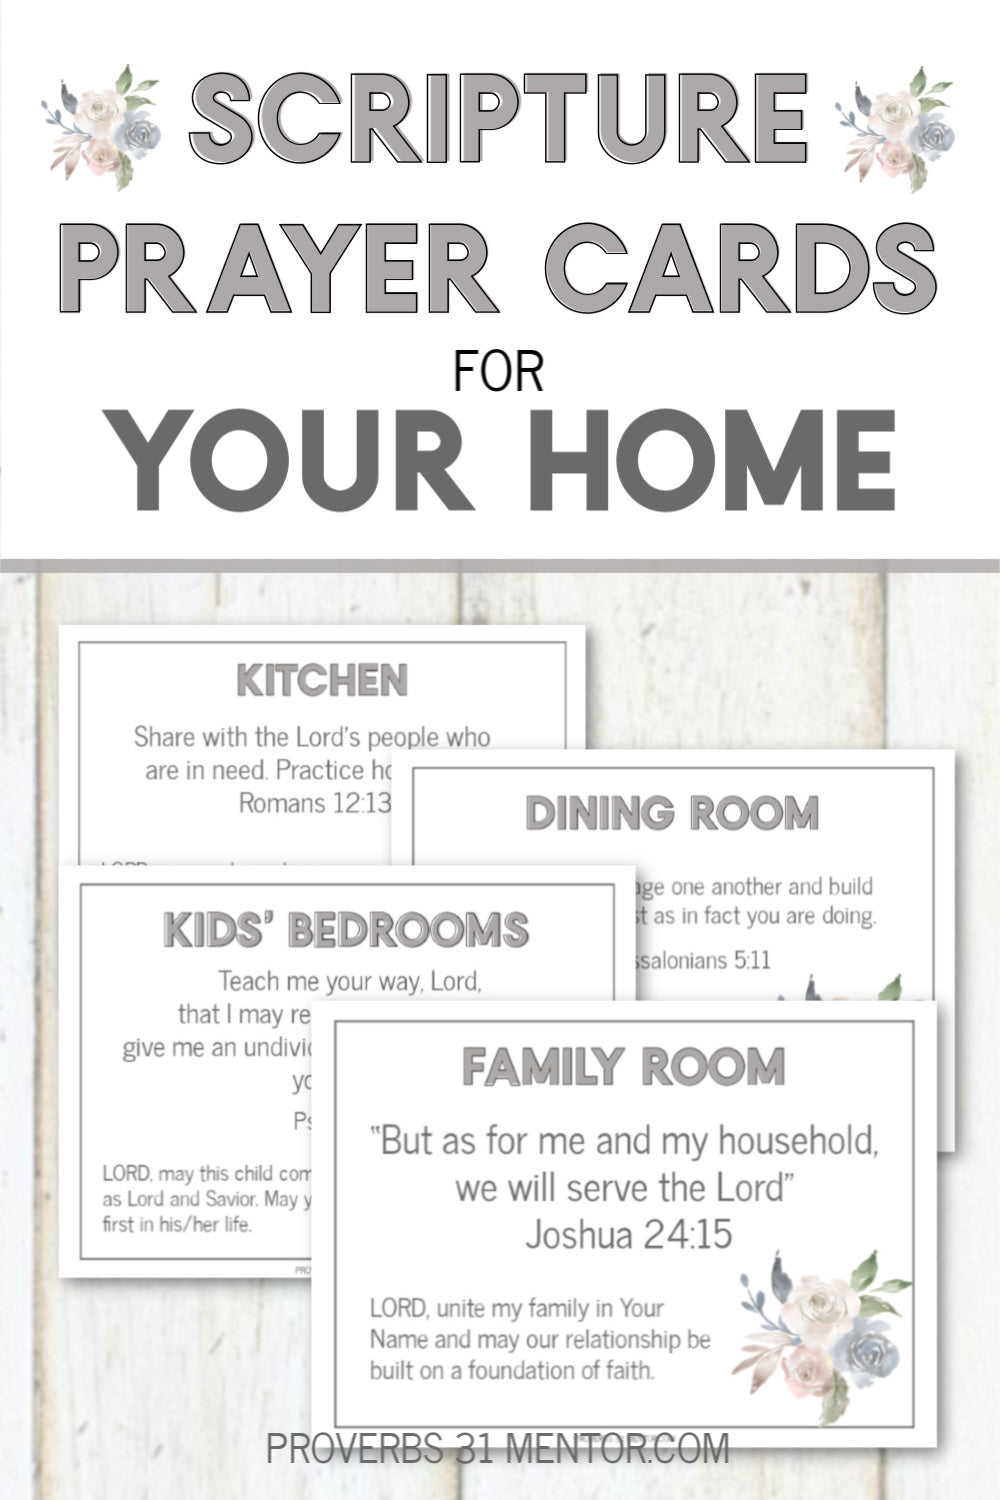 Scripture Prayer Cards for the Home